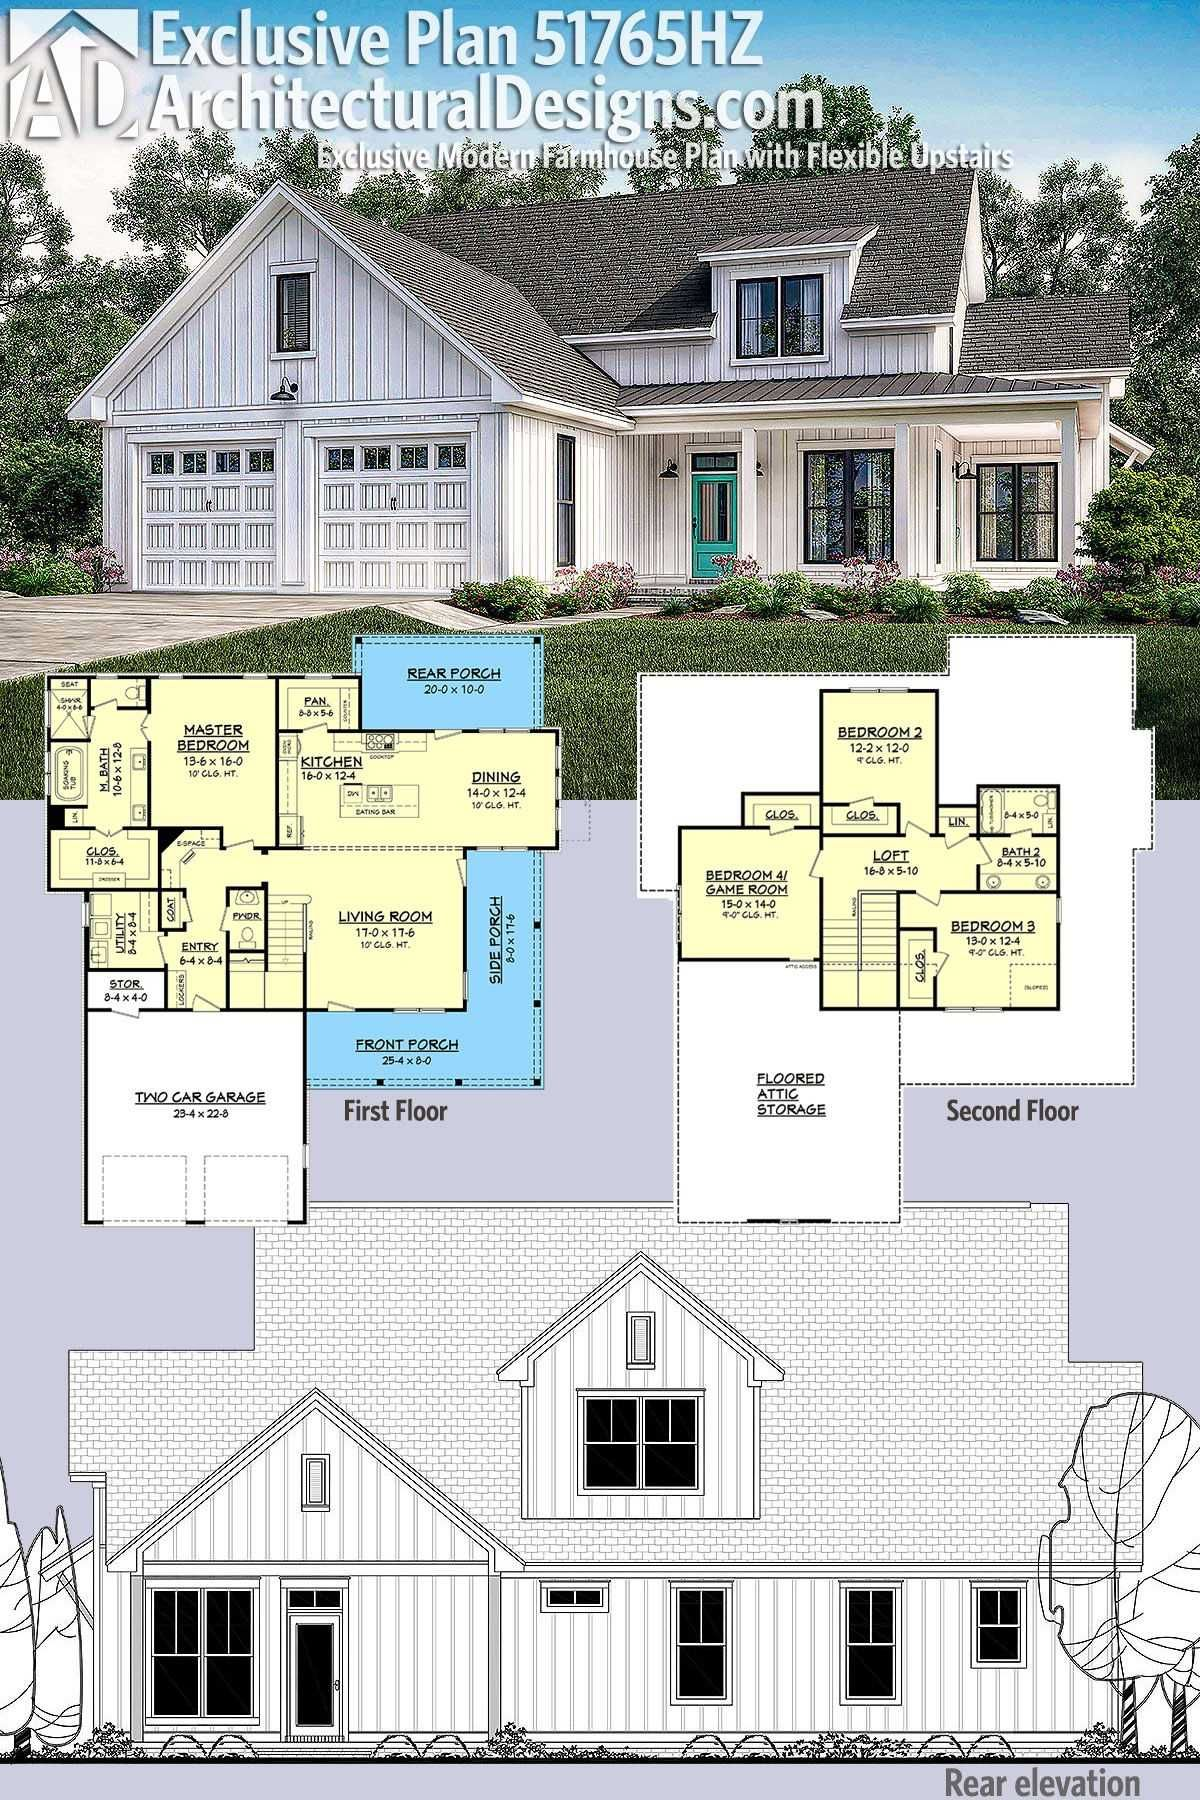 2 Story Modern Farmhouse Plans Beautiful 2 Story Modern Farmhouse Plans 4 Bedroom 2 Story Modern Farmhouse Plans House Plans Farmhouse Basement House Plans